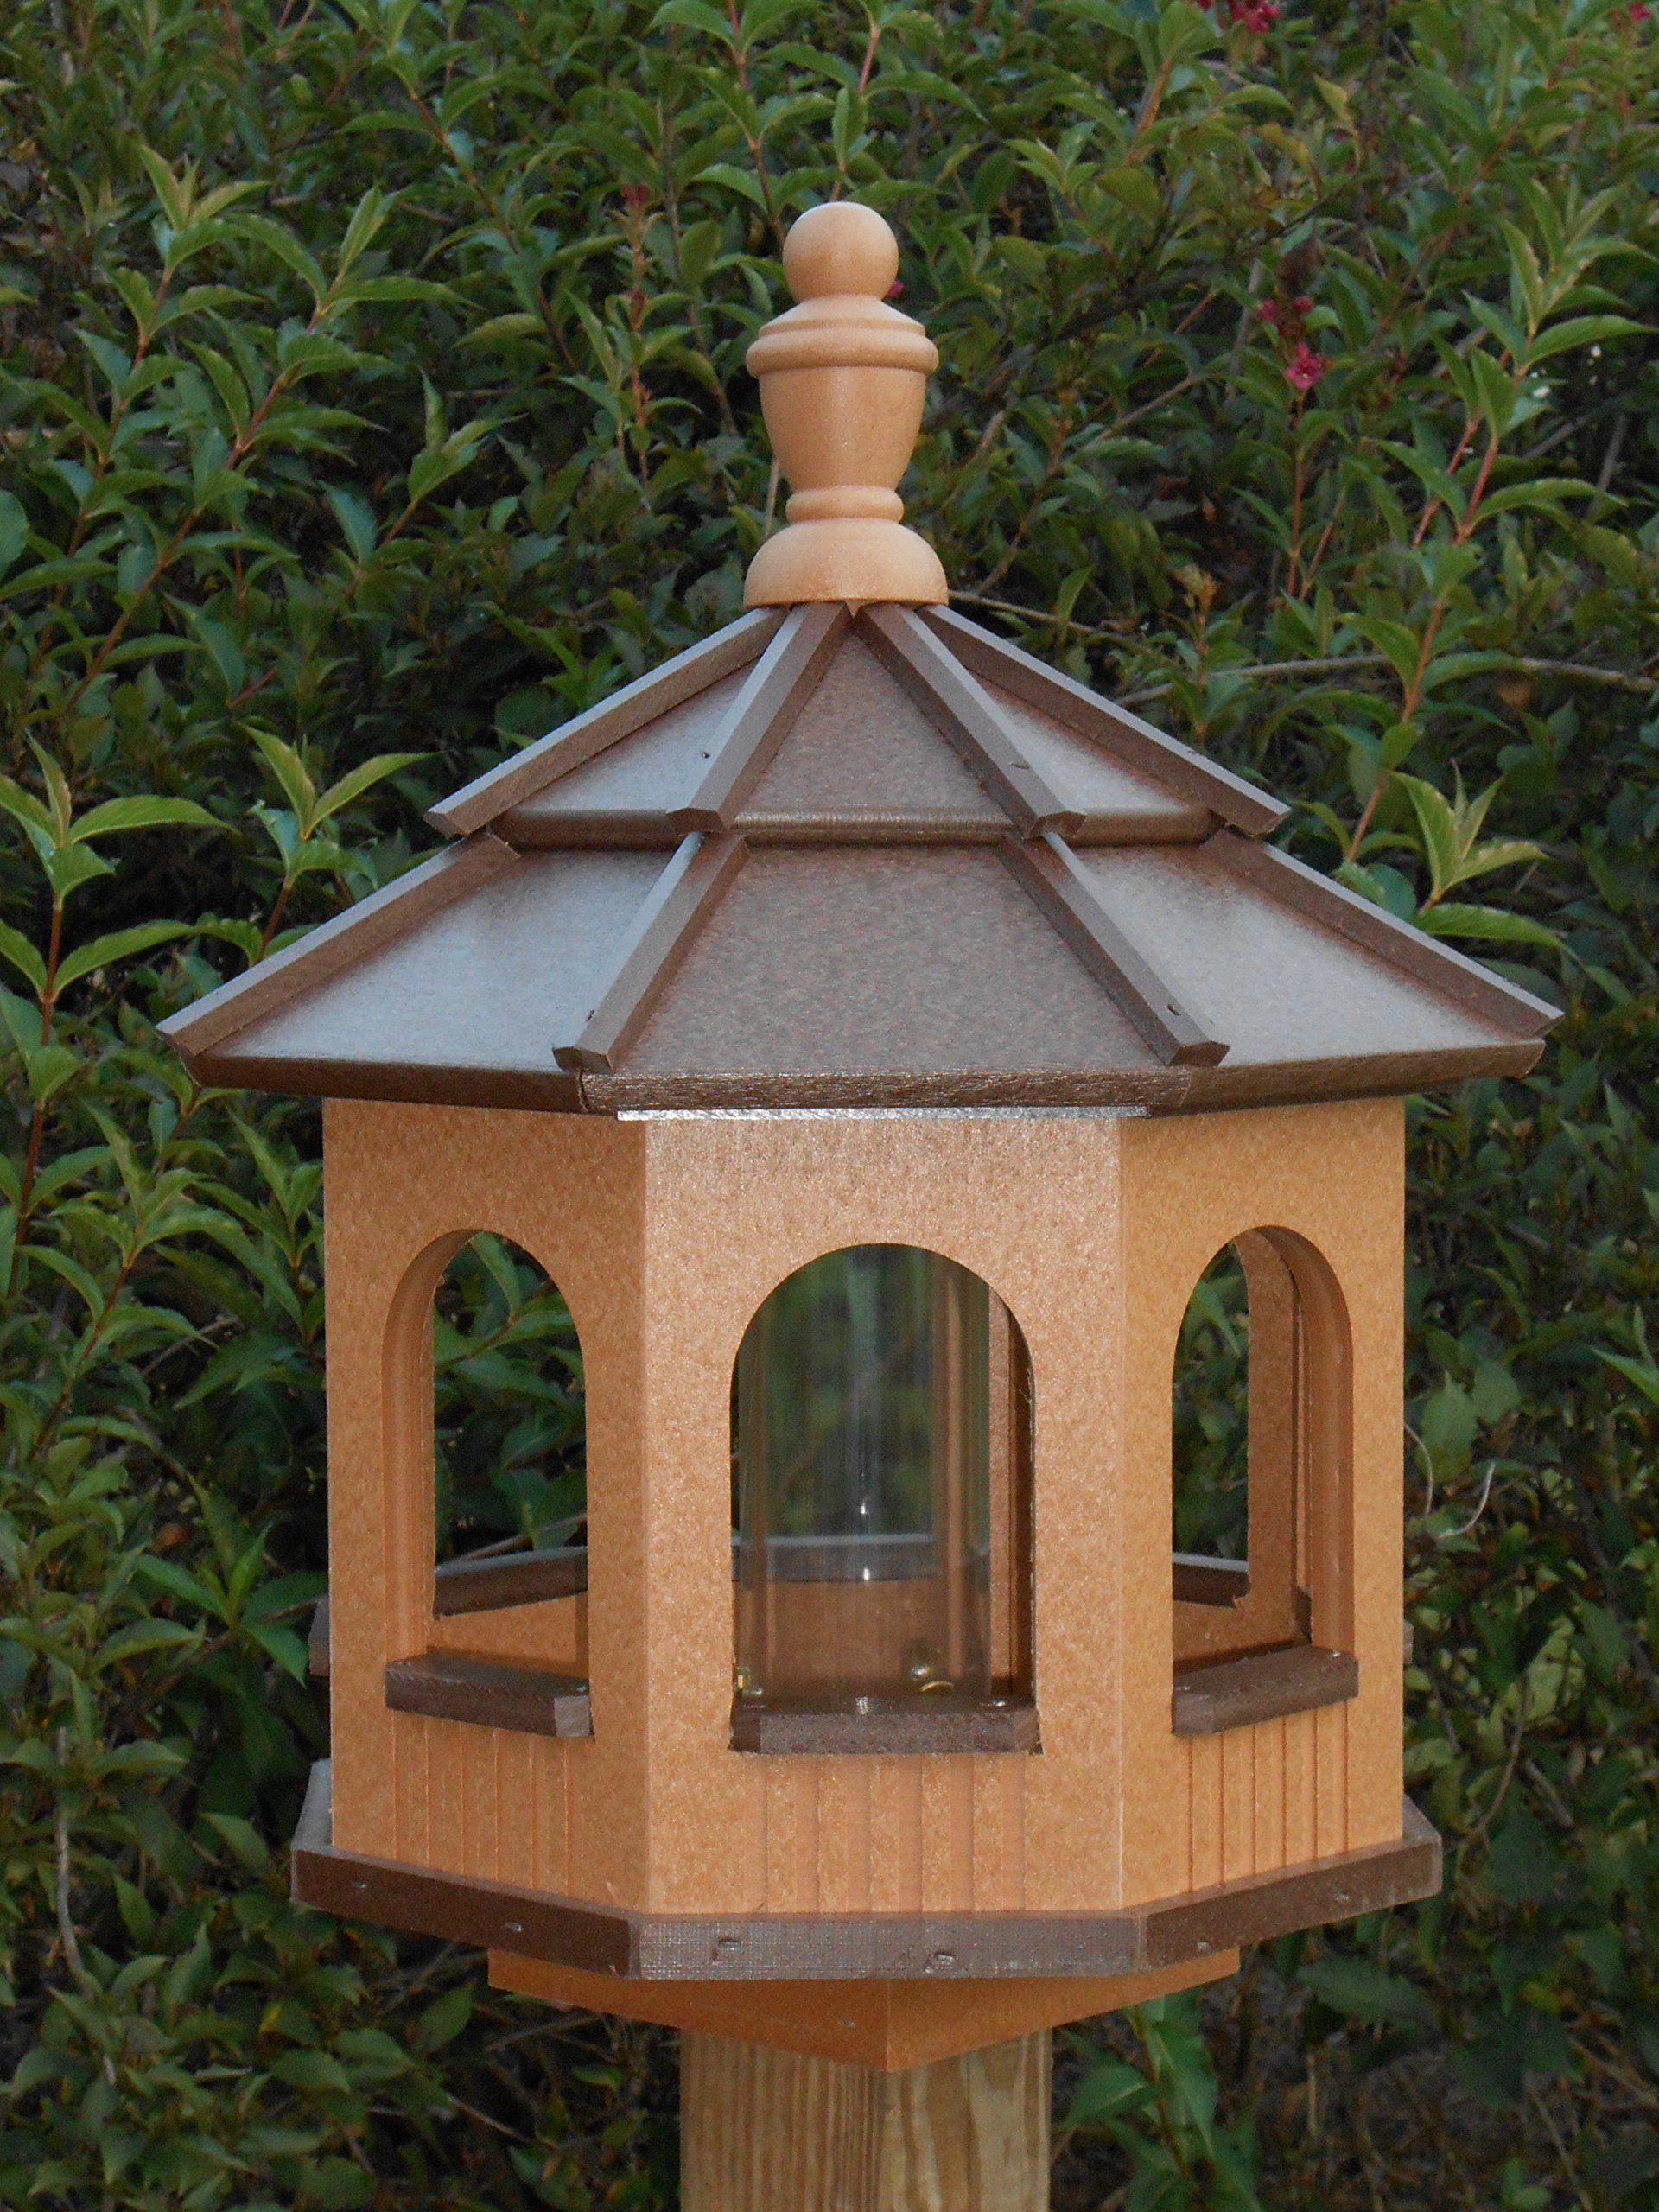 Vinyl Gazebo Bird Feeder Amish Homemade Handmade Handcrafted Cedar & Brown med by Amish Crafted